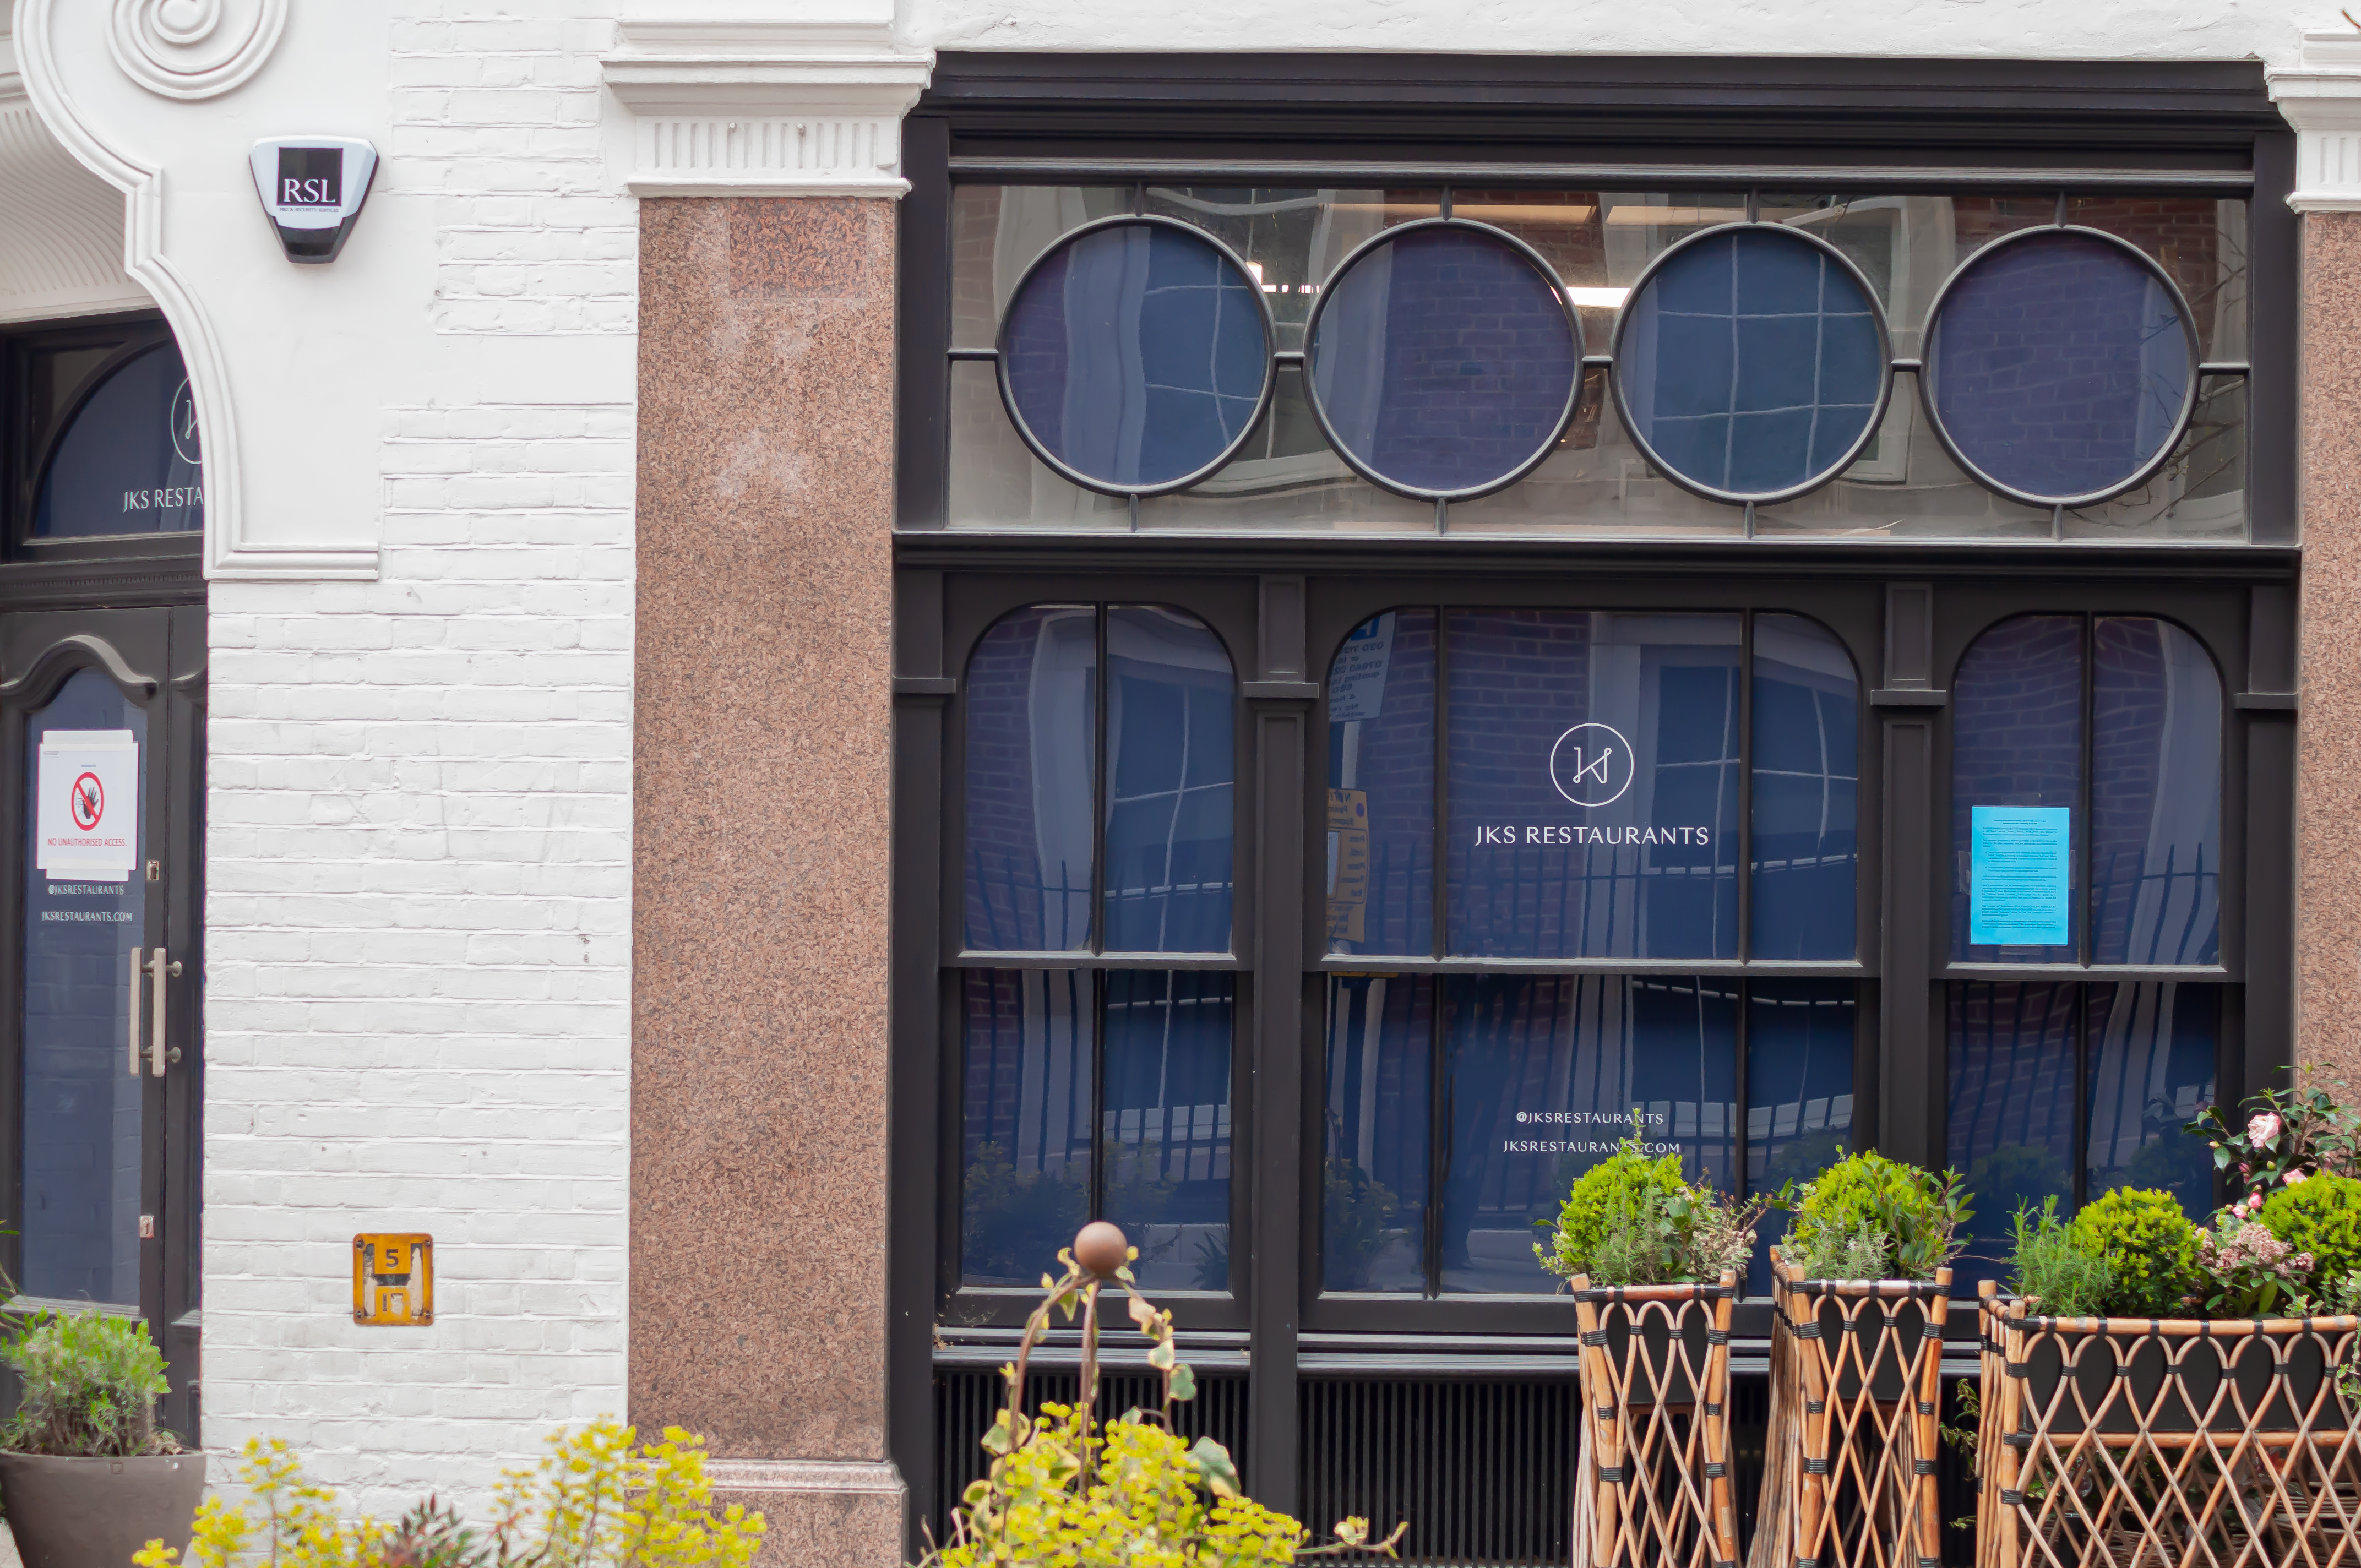 """""""JKS Restaurants"""" signage in the windows of a new restaurant at 42 North Audley Street in Mayfair"""